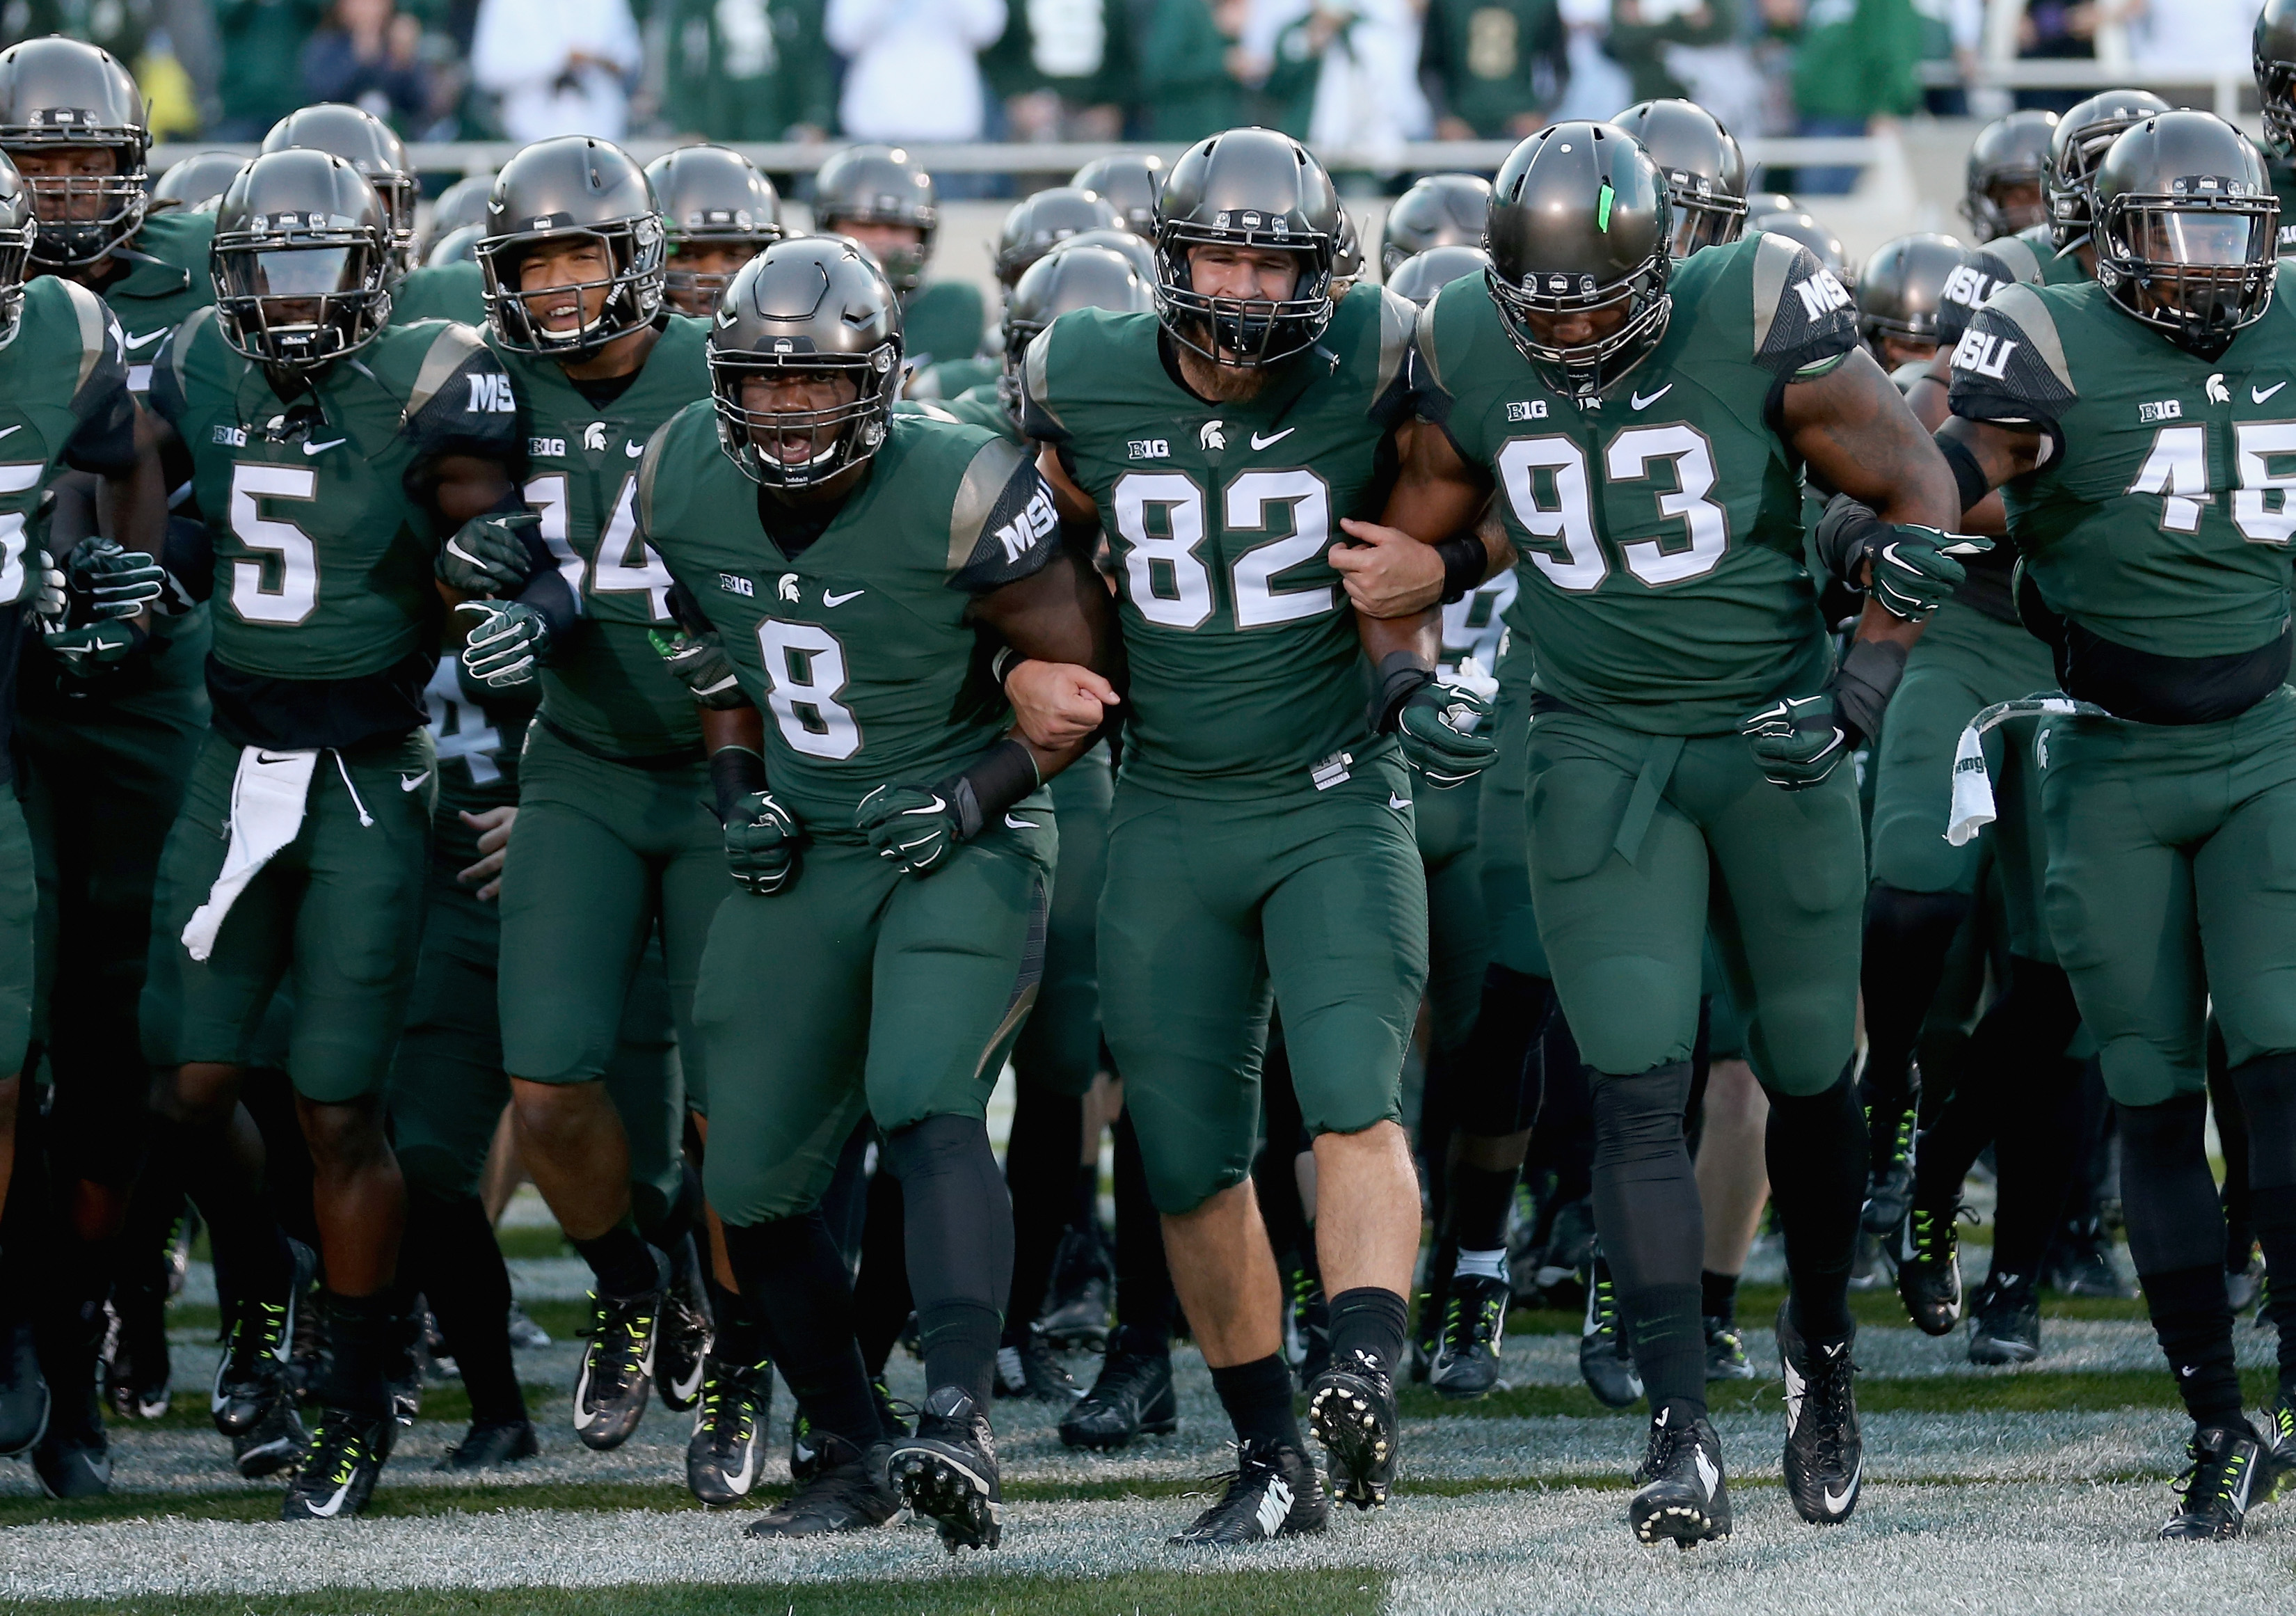 EAST LANSING, MI - SEPTEMBER 12: A general view of the Michigan State Spartans on the field before their game at Spartan Stadium on September 12, 2015 in East Lansing, Michigan. (Photo by Streeter Lecka/Getty Images)